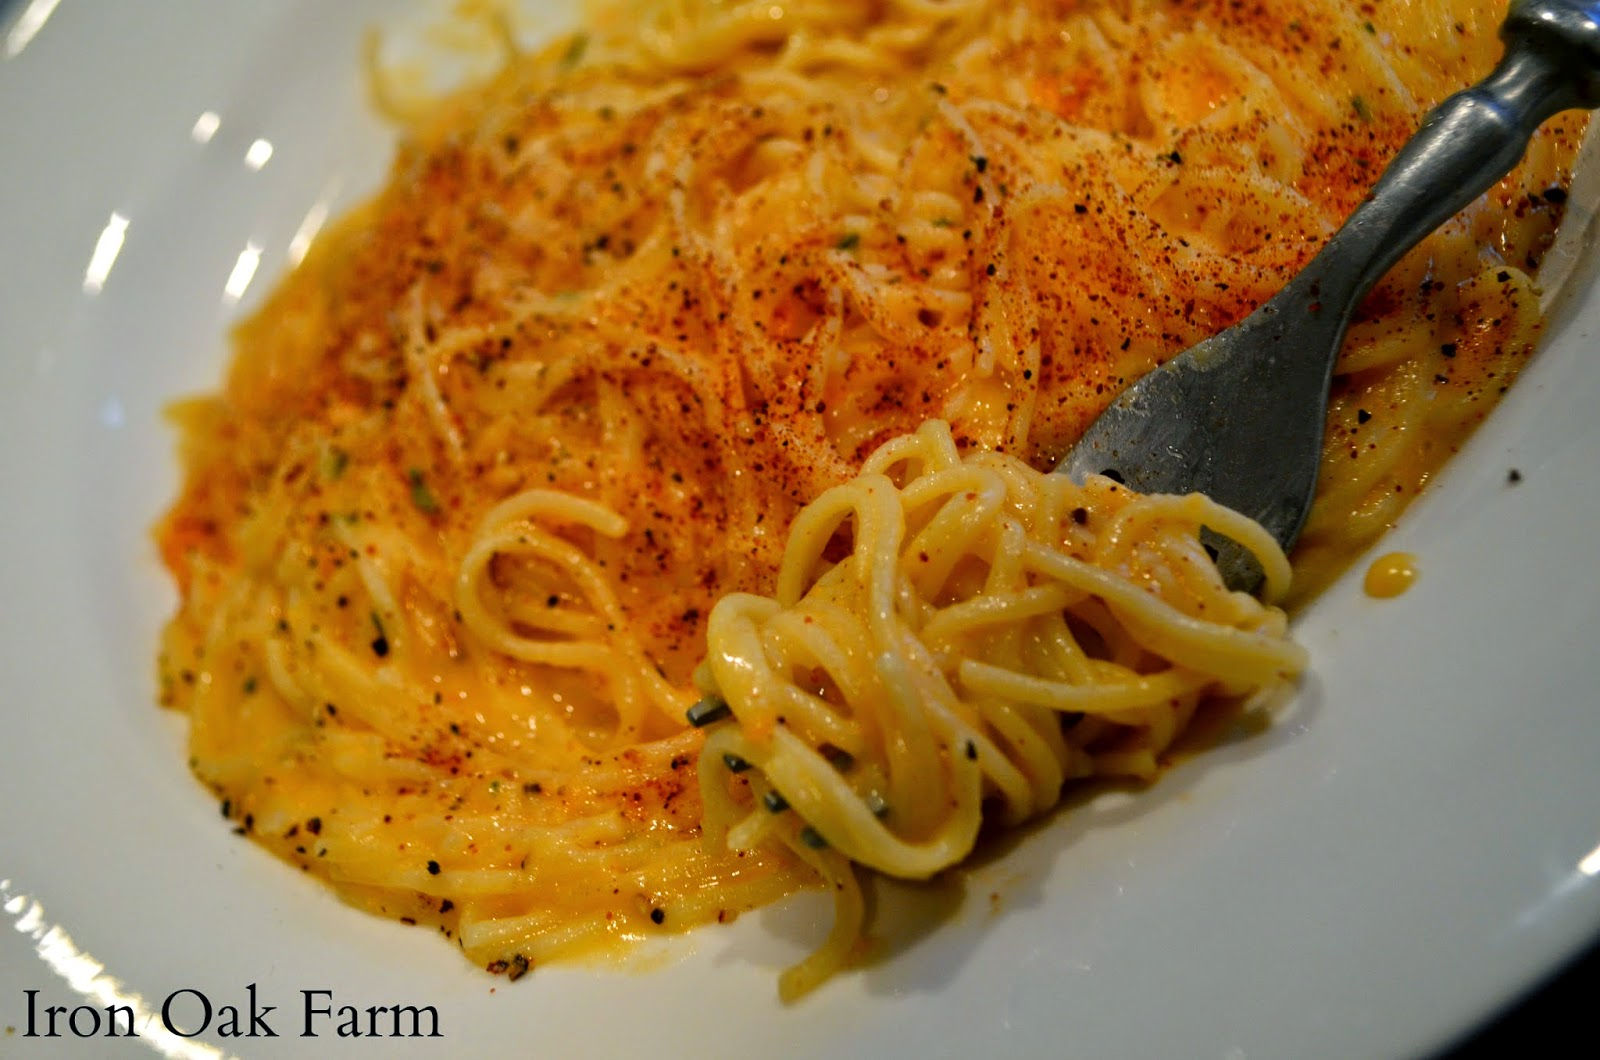 Iron Oak Farm: Roasted Sweet Potato and Rosemary Pasta